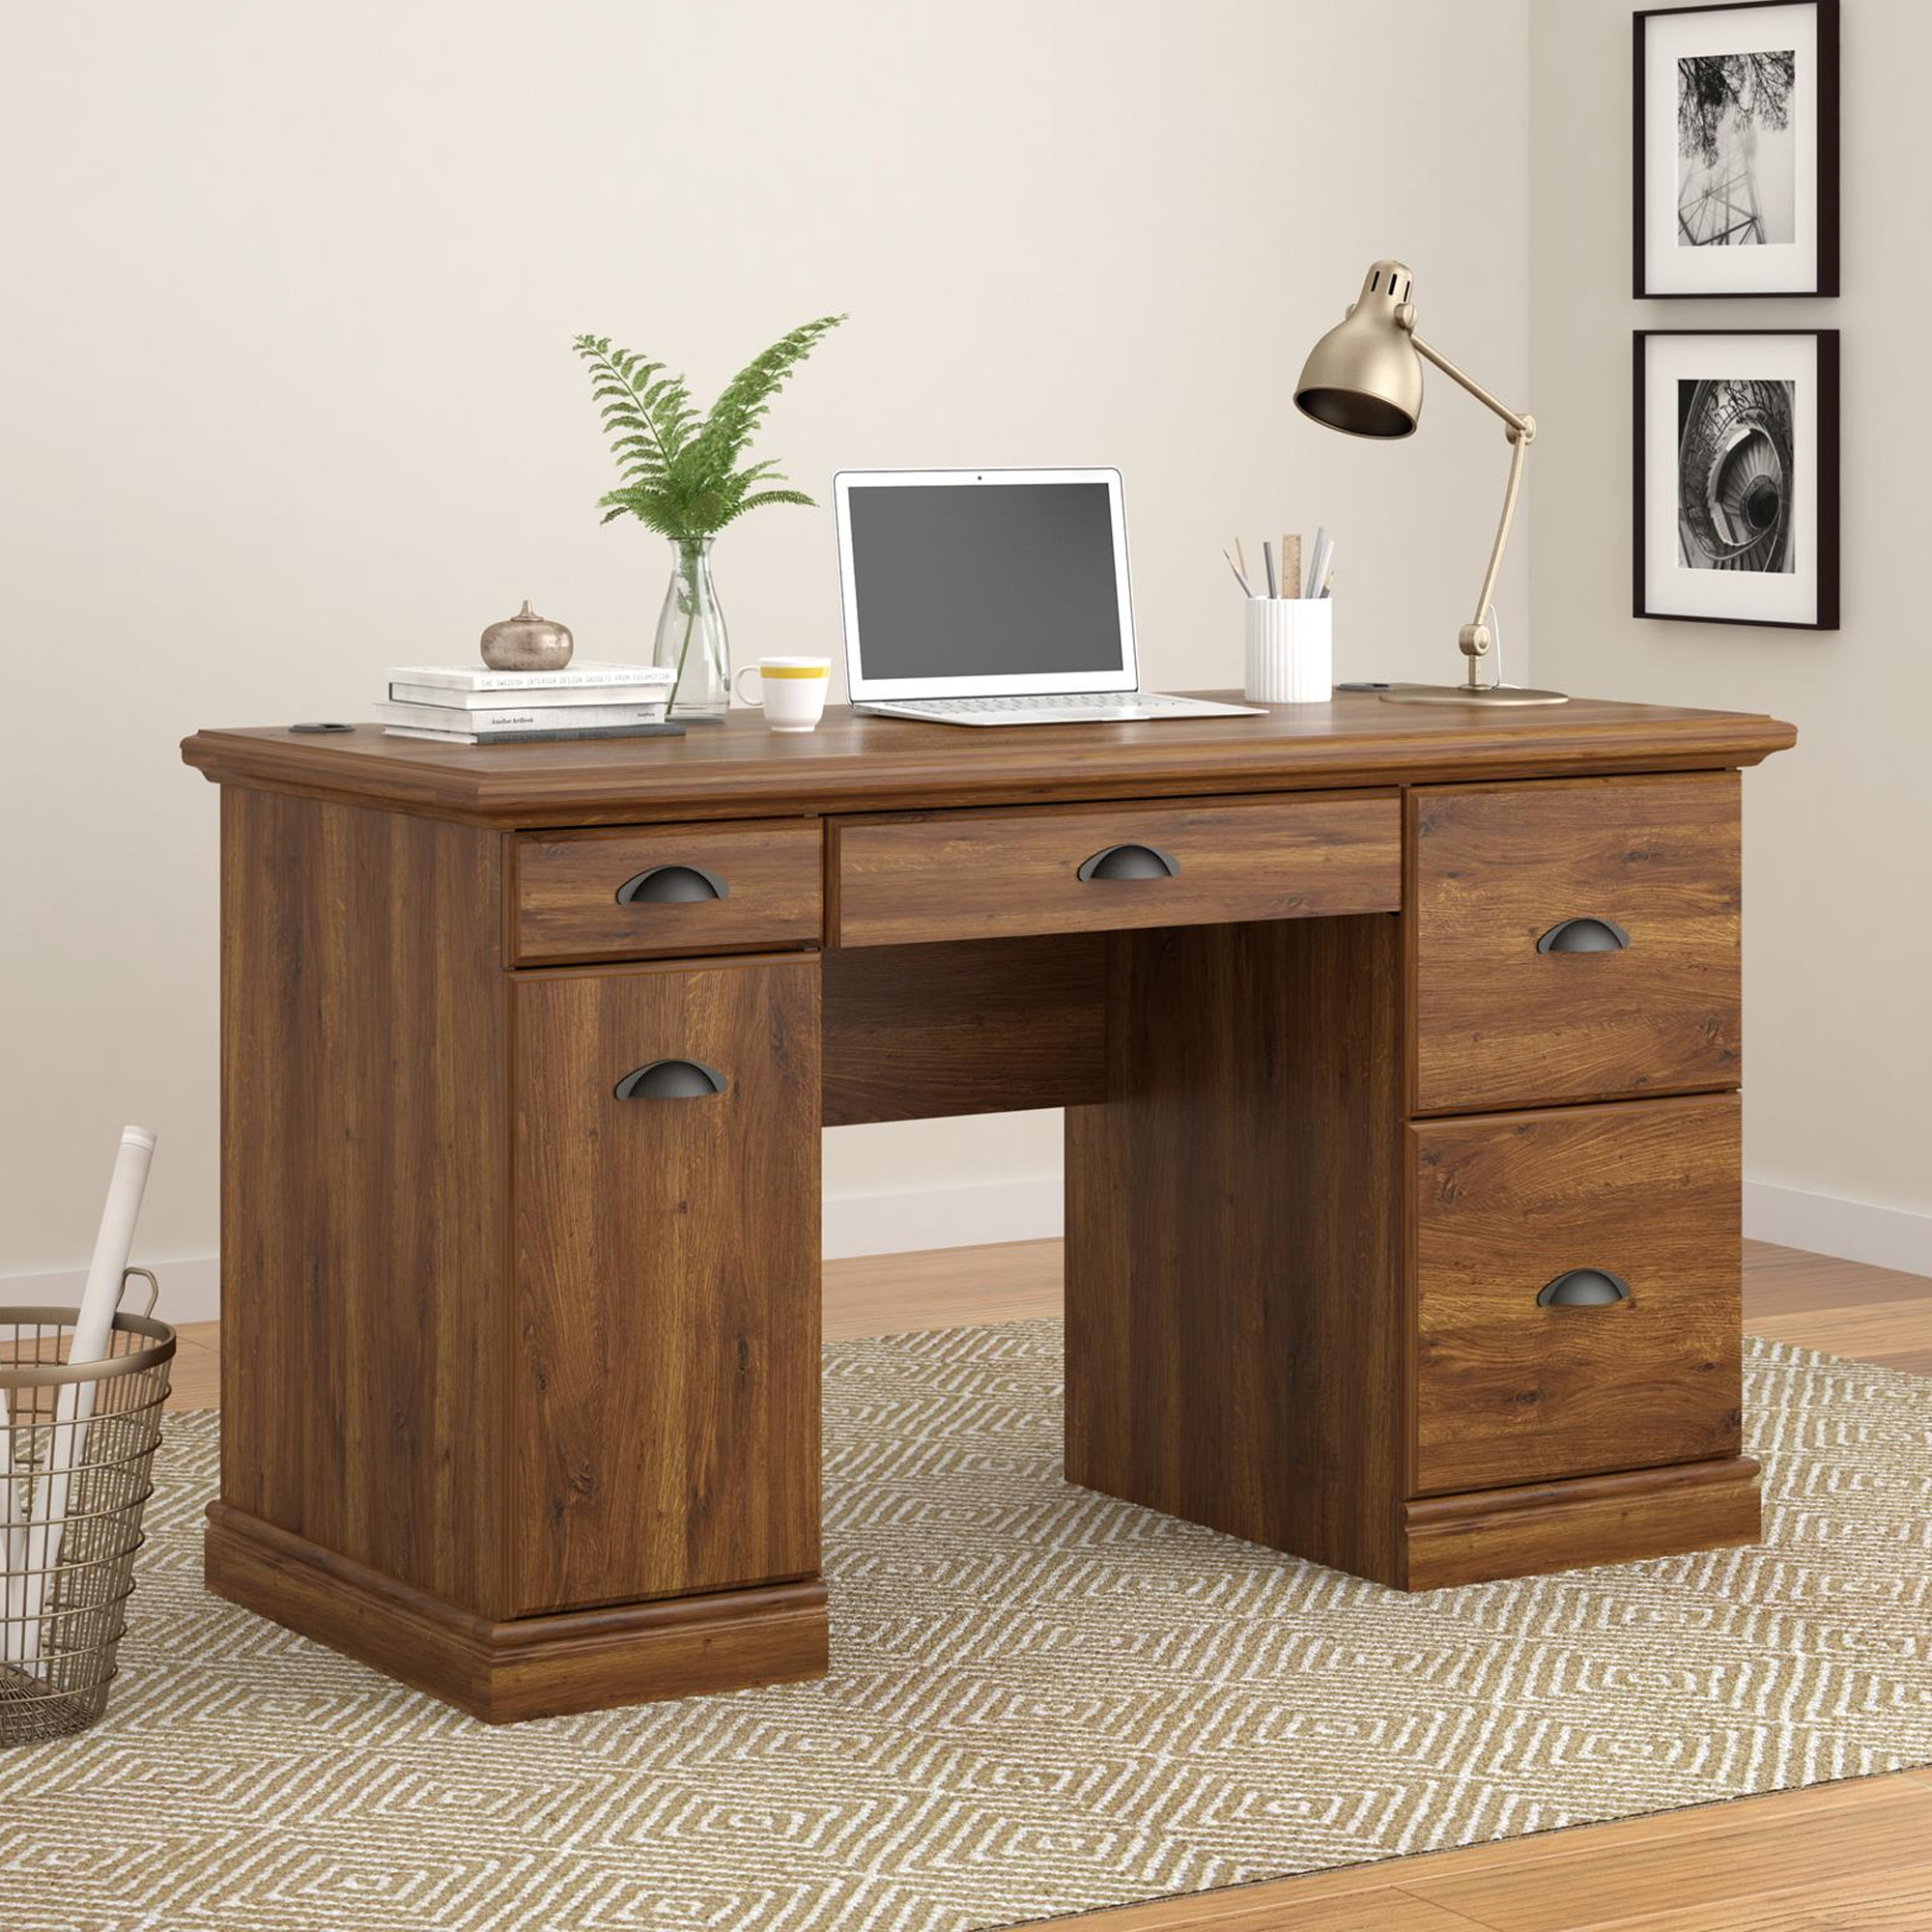 Superieur Better Homes And Gardens Computer Desk With Filing Drawers, Brown Oak    Walmart.com